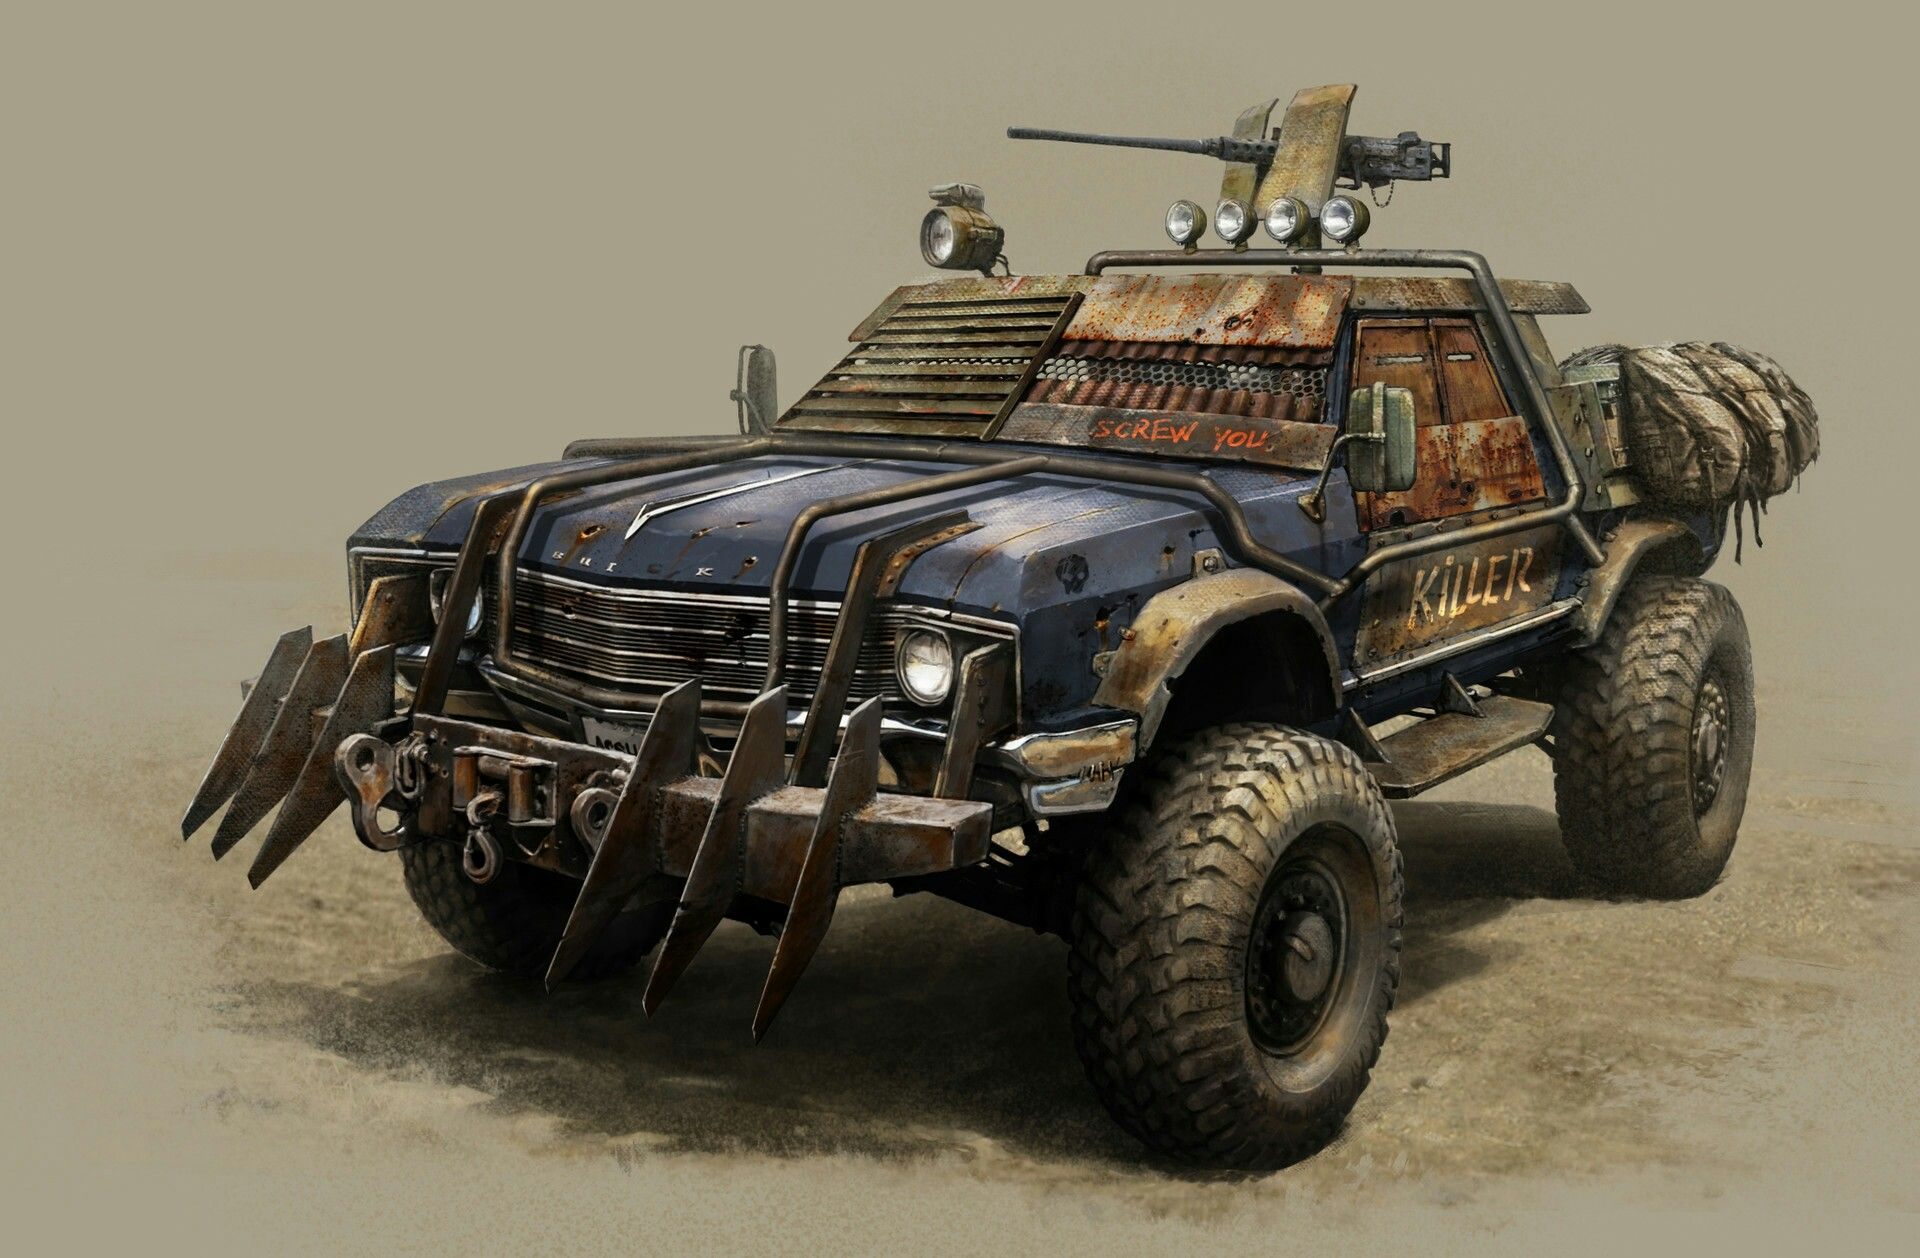 Bien-aimé Devel Sixty 6x6 SUV looks ready to survive the apocalypse  EB98